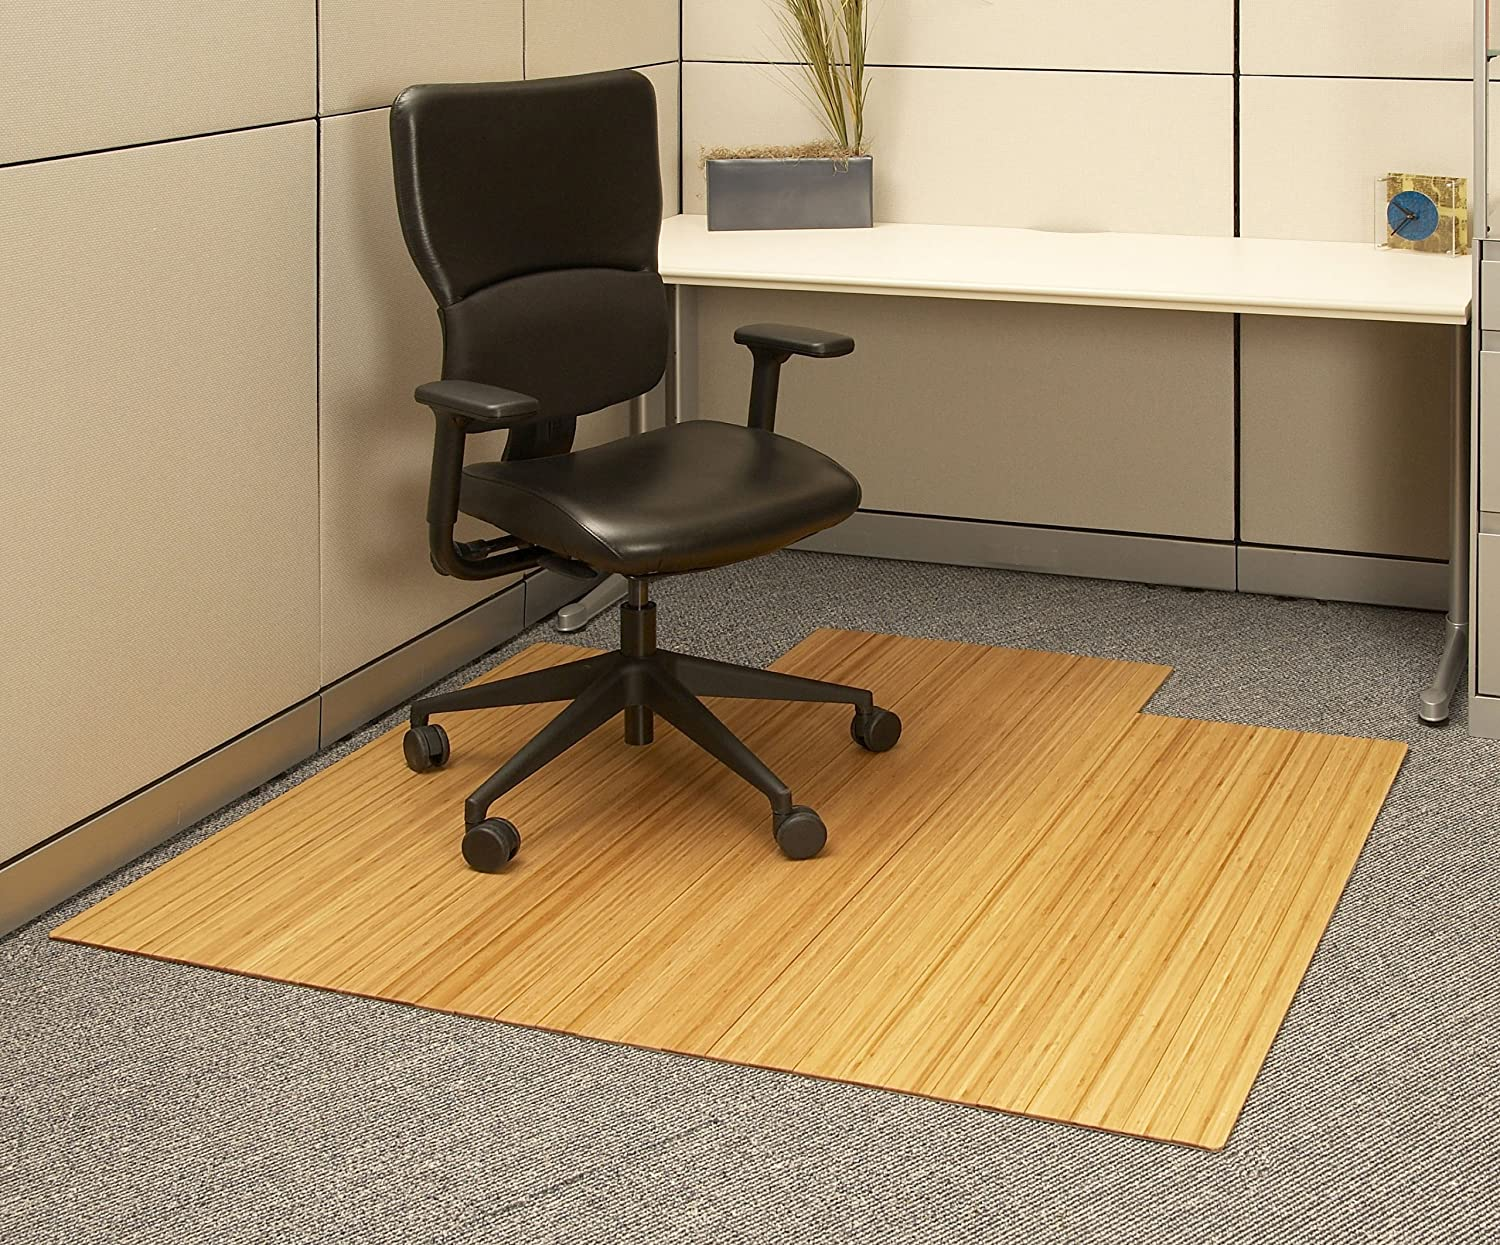 Amazoncom Anji Mountain AMB Bamboo RollUp Chairmat With - Office chair mat